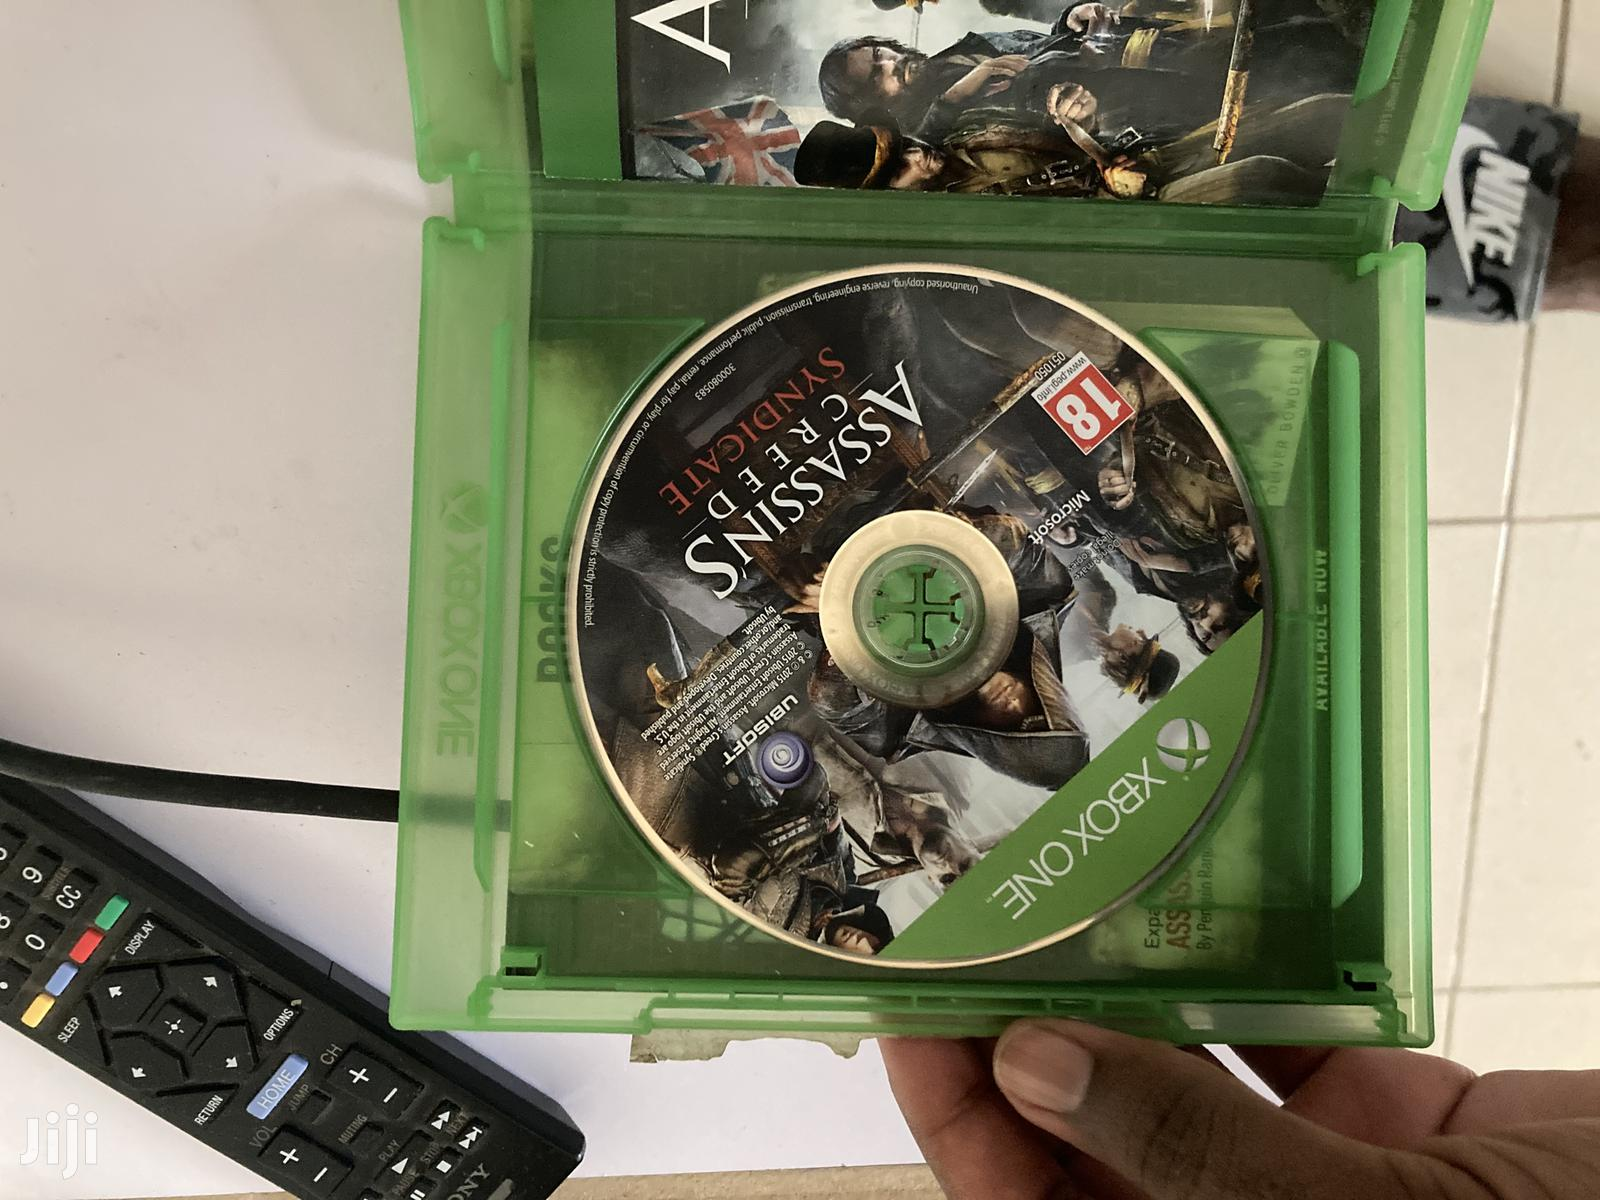 Used Xbox One Games in Good Condition   Video Games for sale in Madina, Greater Accra, Ghana